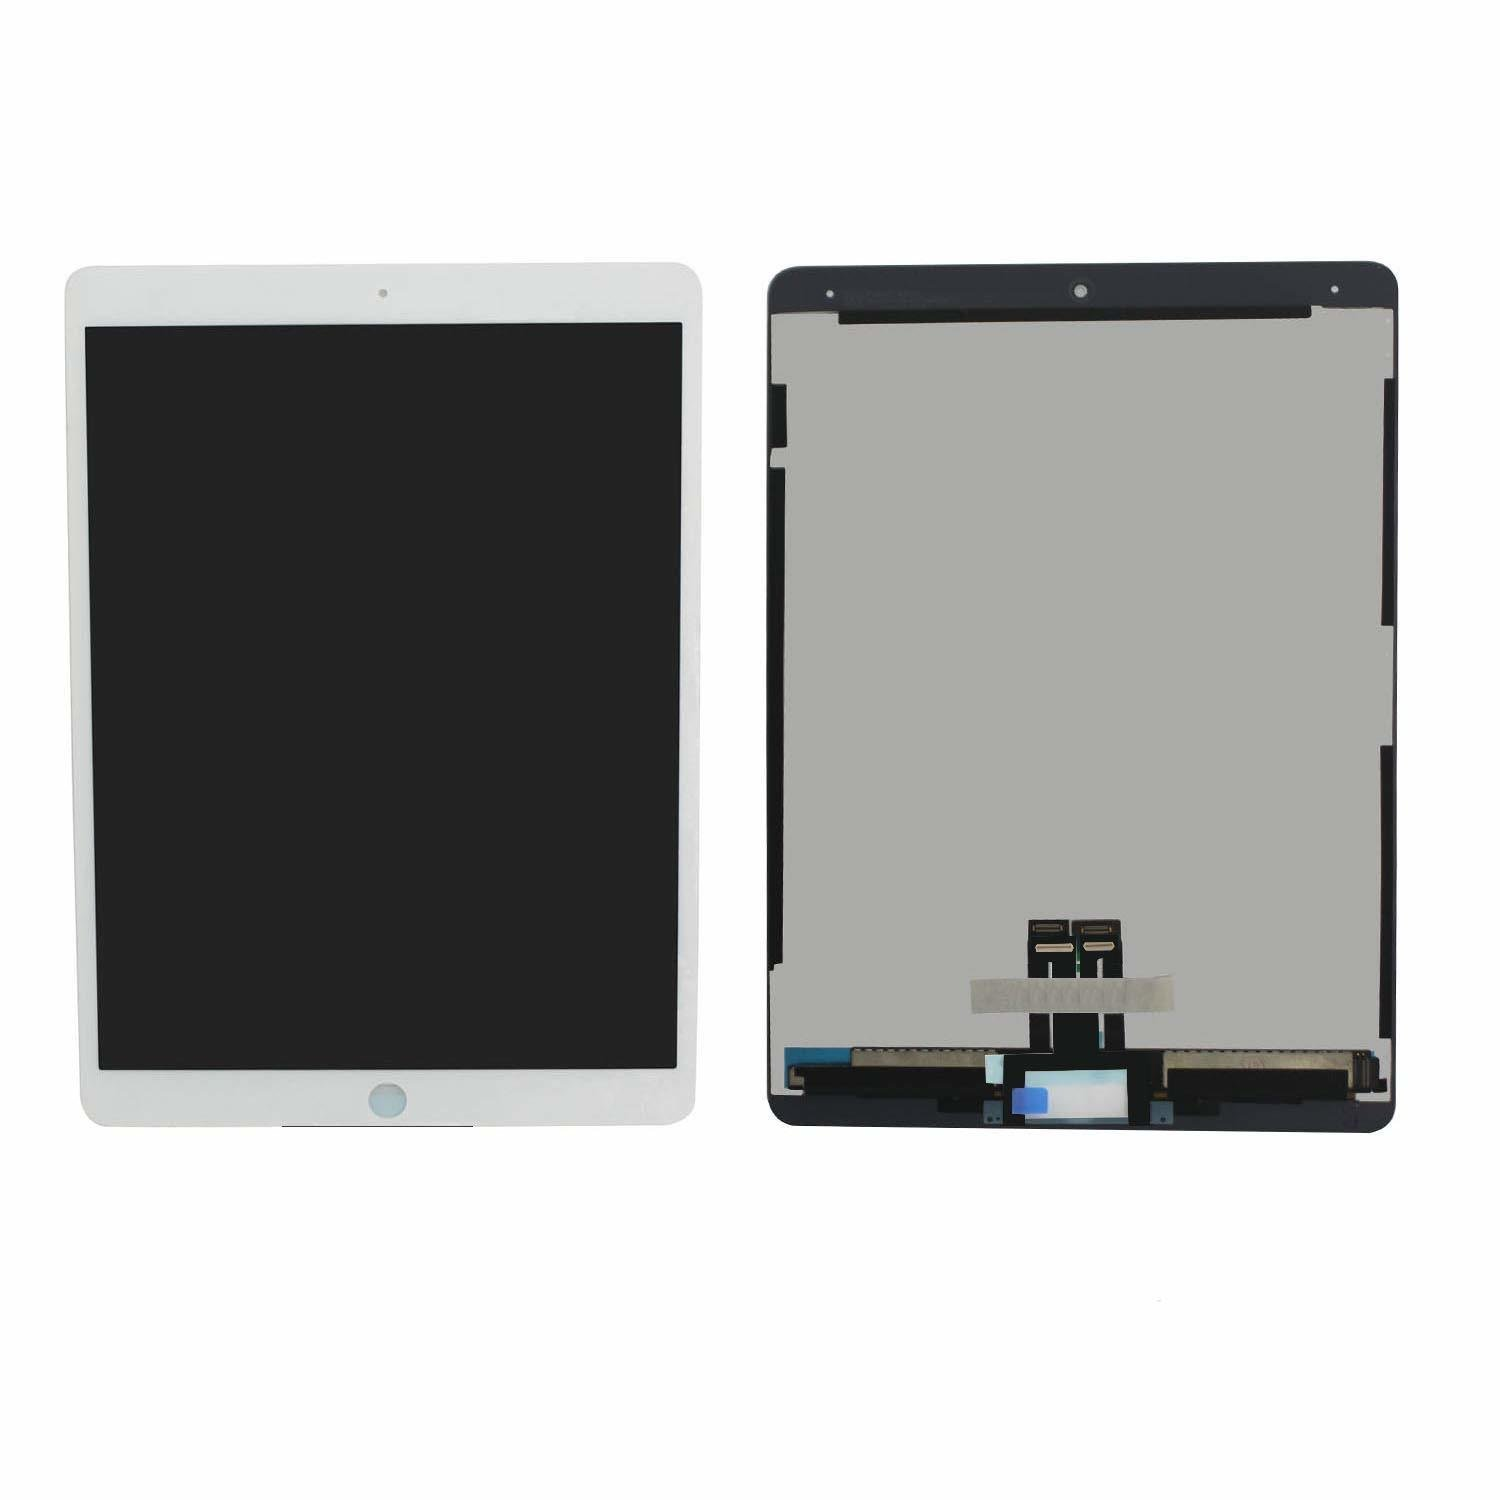 iPad Pro10.5 Touch digitizer & LCD Replacement - White - Original Quality